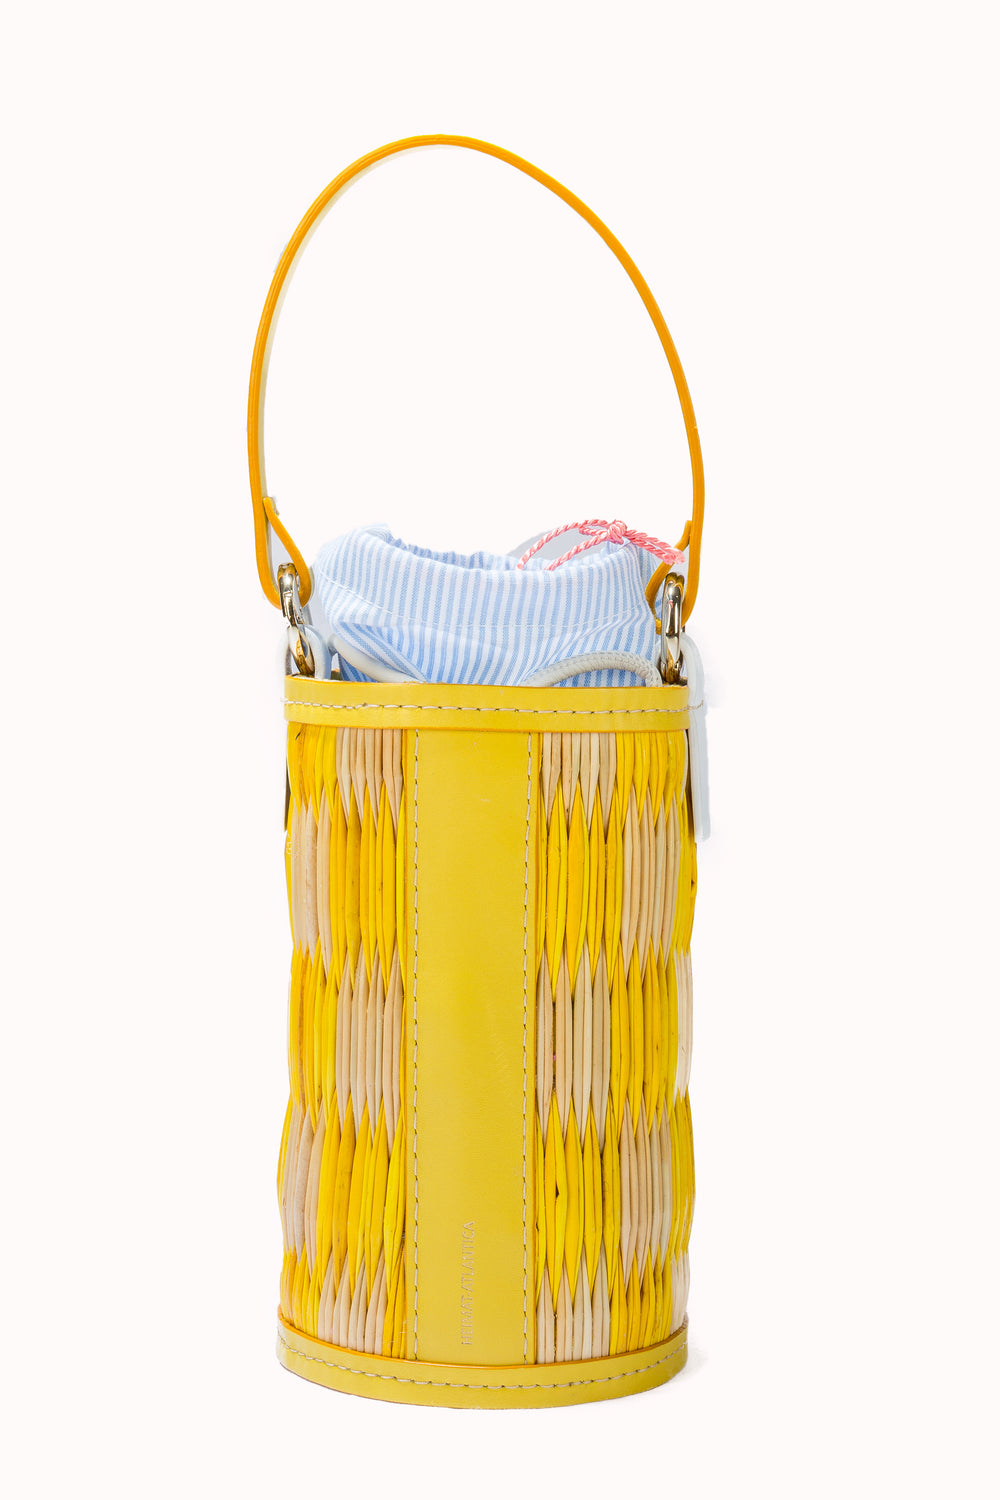 Cupid bag yellow - JUST BACK IN STOCK!!